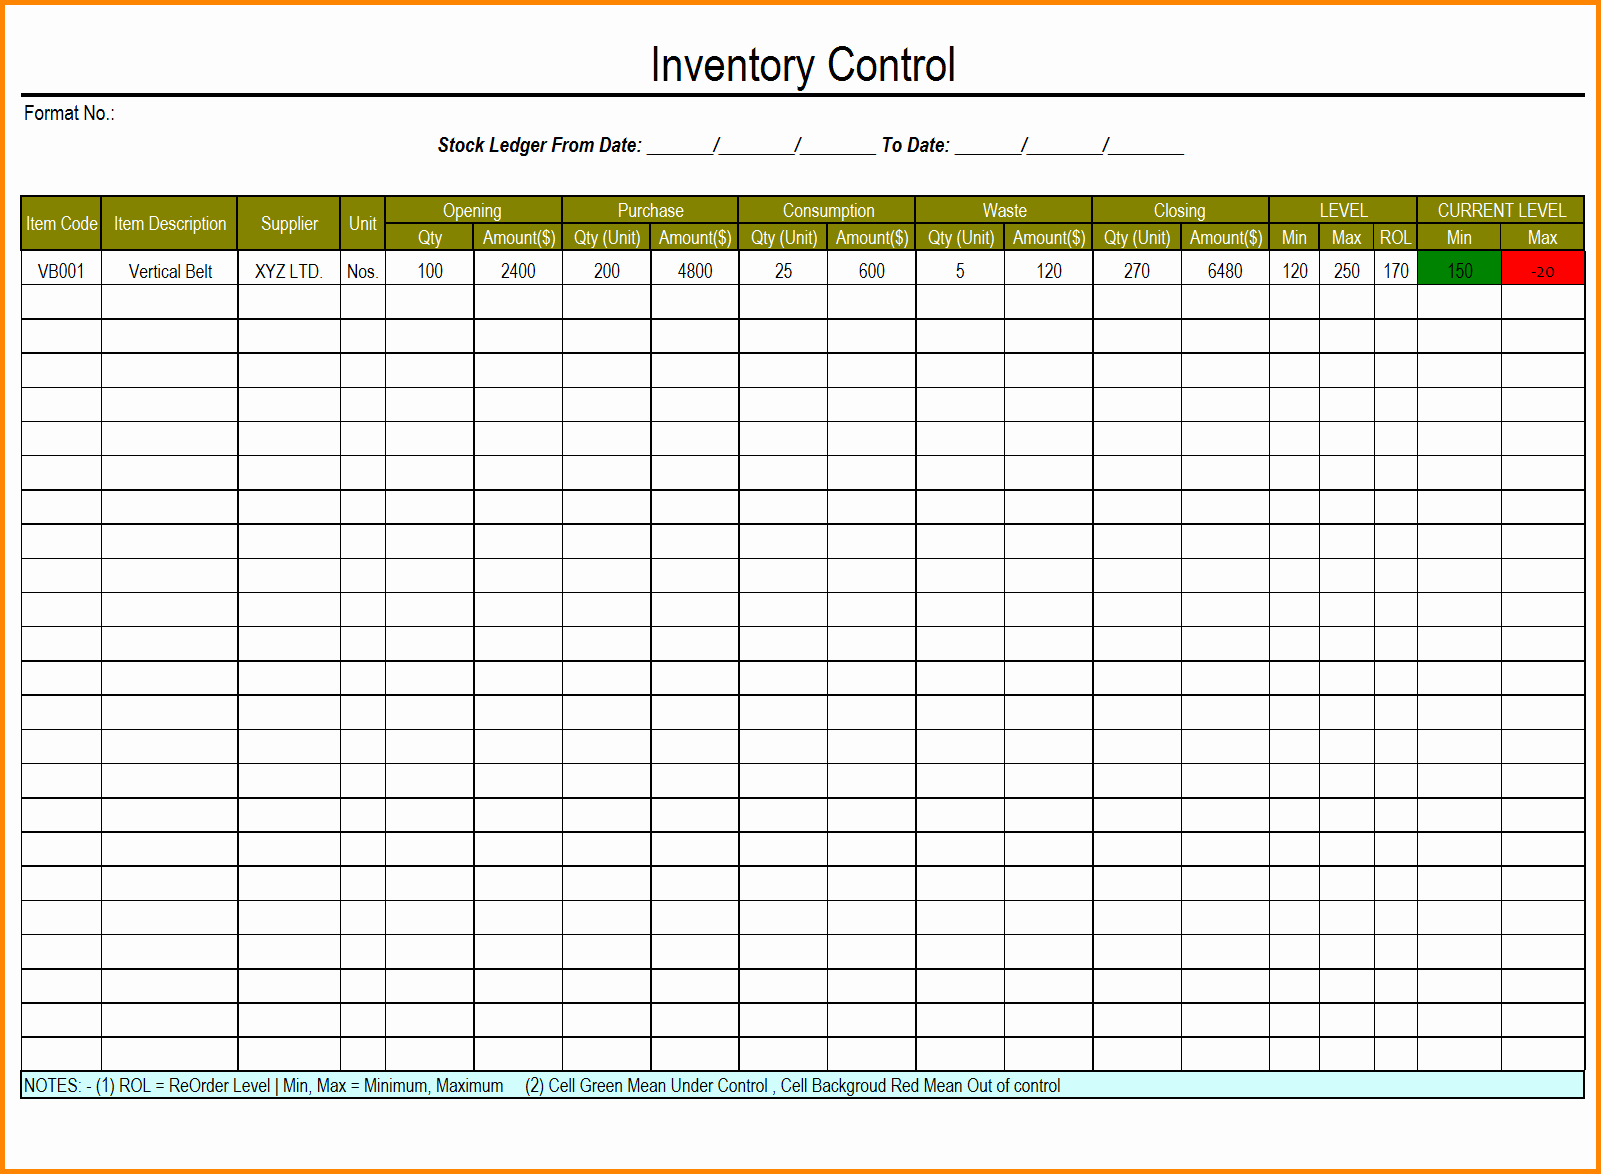 Inventory Sheet Template Excel Awesome Excel Inventory Template with formulas 1 Inventory